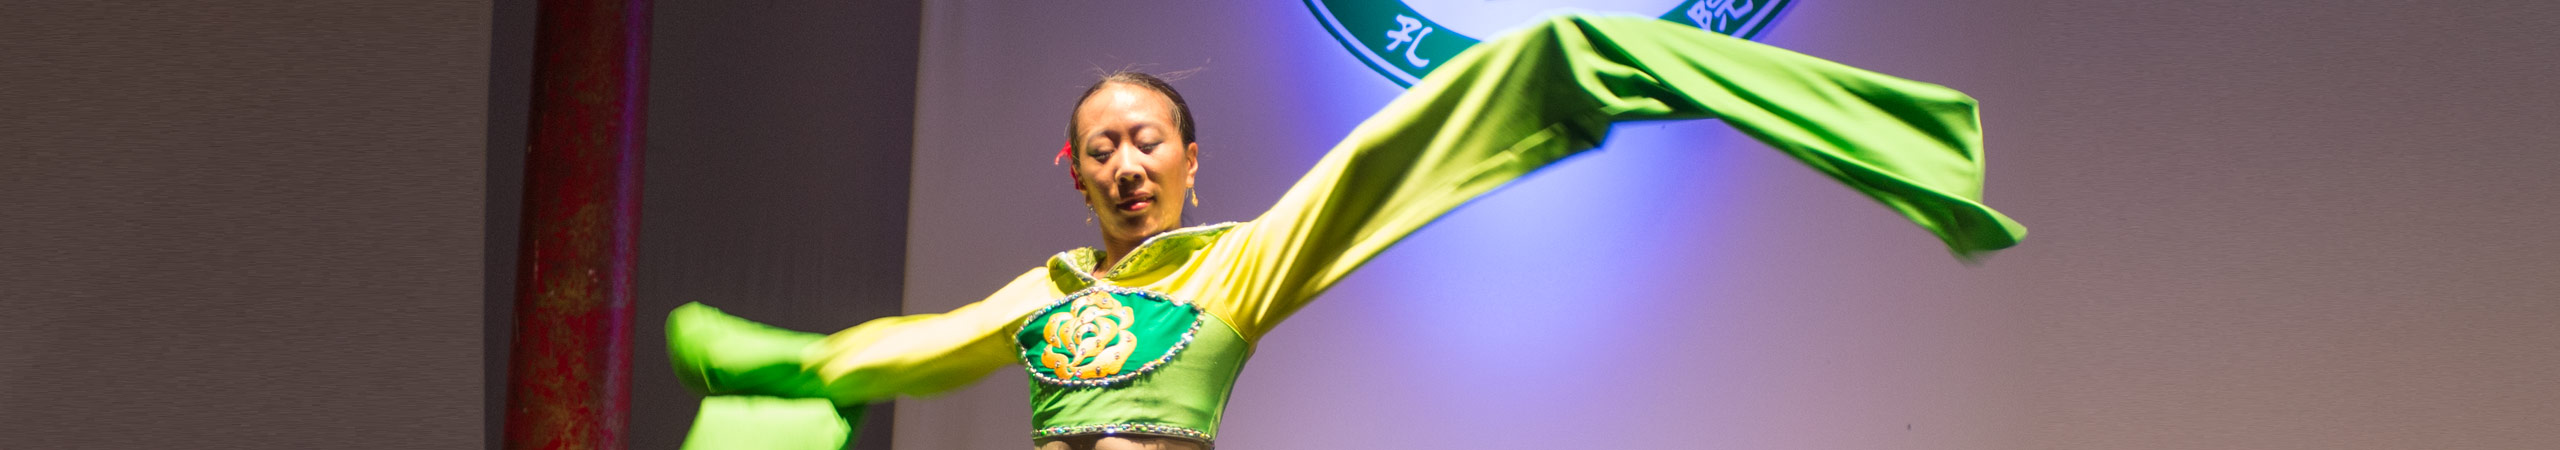 Asian dancer in colorful costume with yellow ribbon.